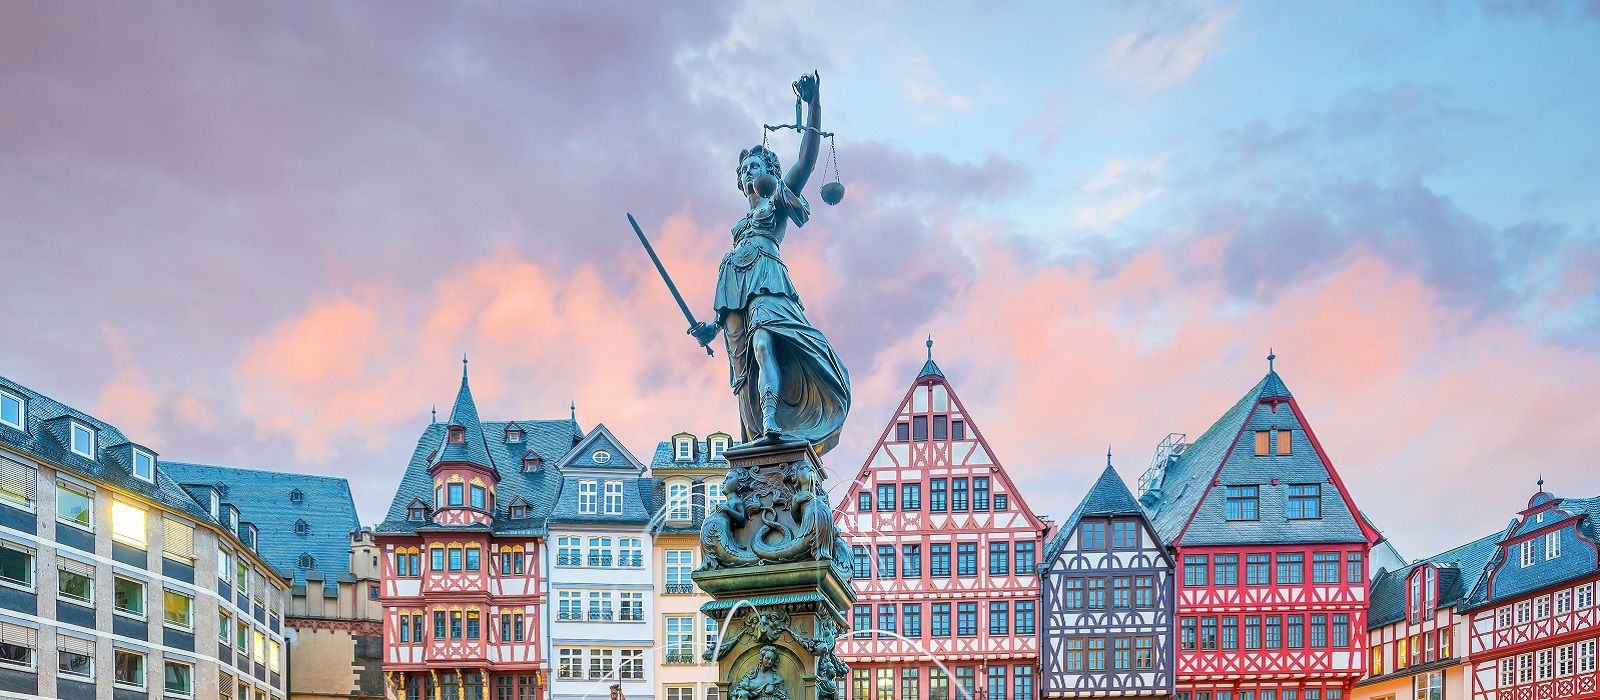 Enchanting Travels Germany Tours Old town square romerberg in Frankfurt, Germany at twilight